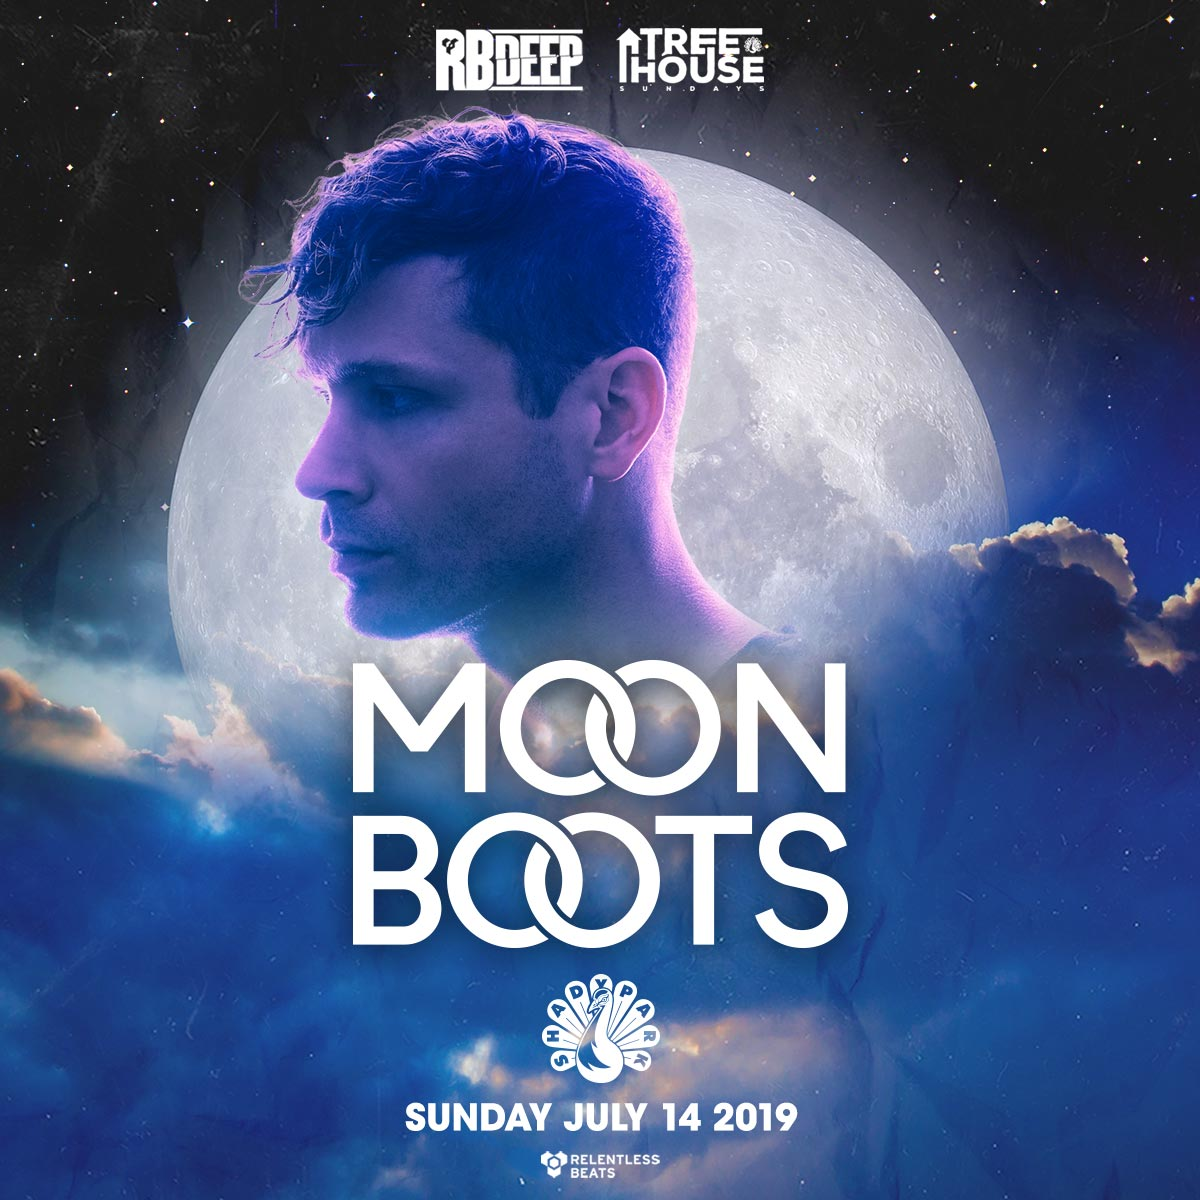 Flyer for Moon Boots